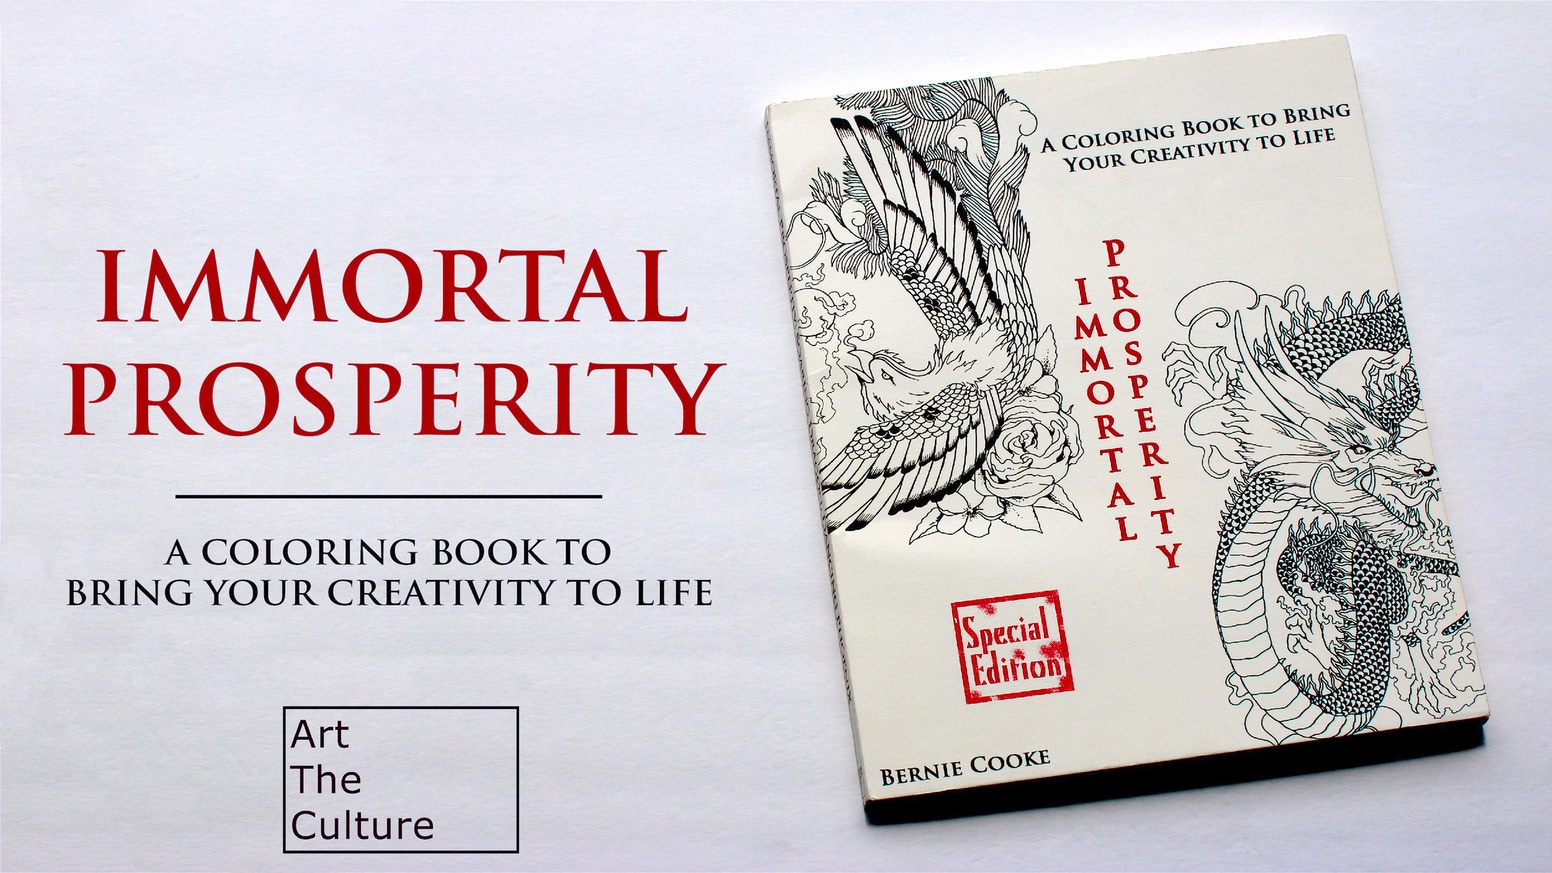 Immortal Prosperity is a premium, highly-detailed coloring book featuring dragons and phoenixes. It is designed for people of all ages.